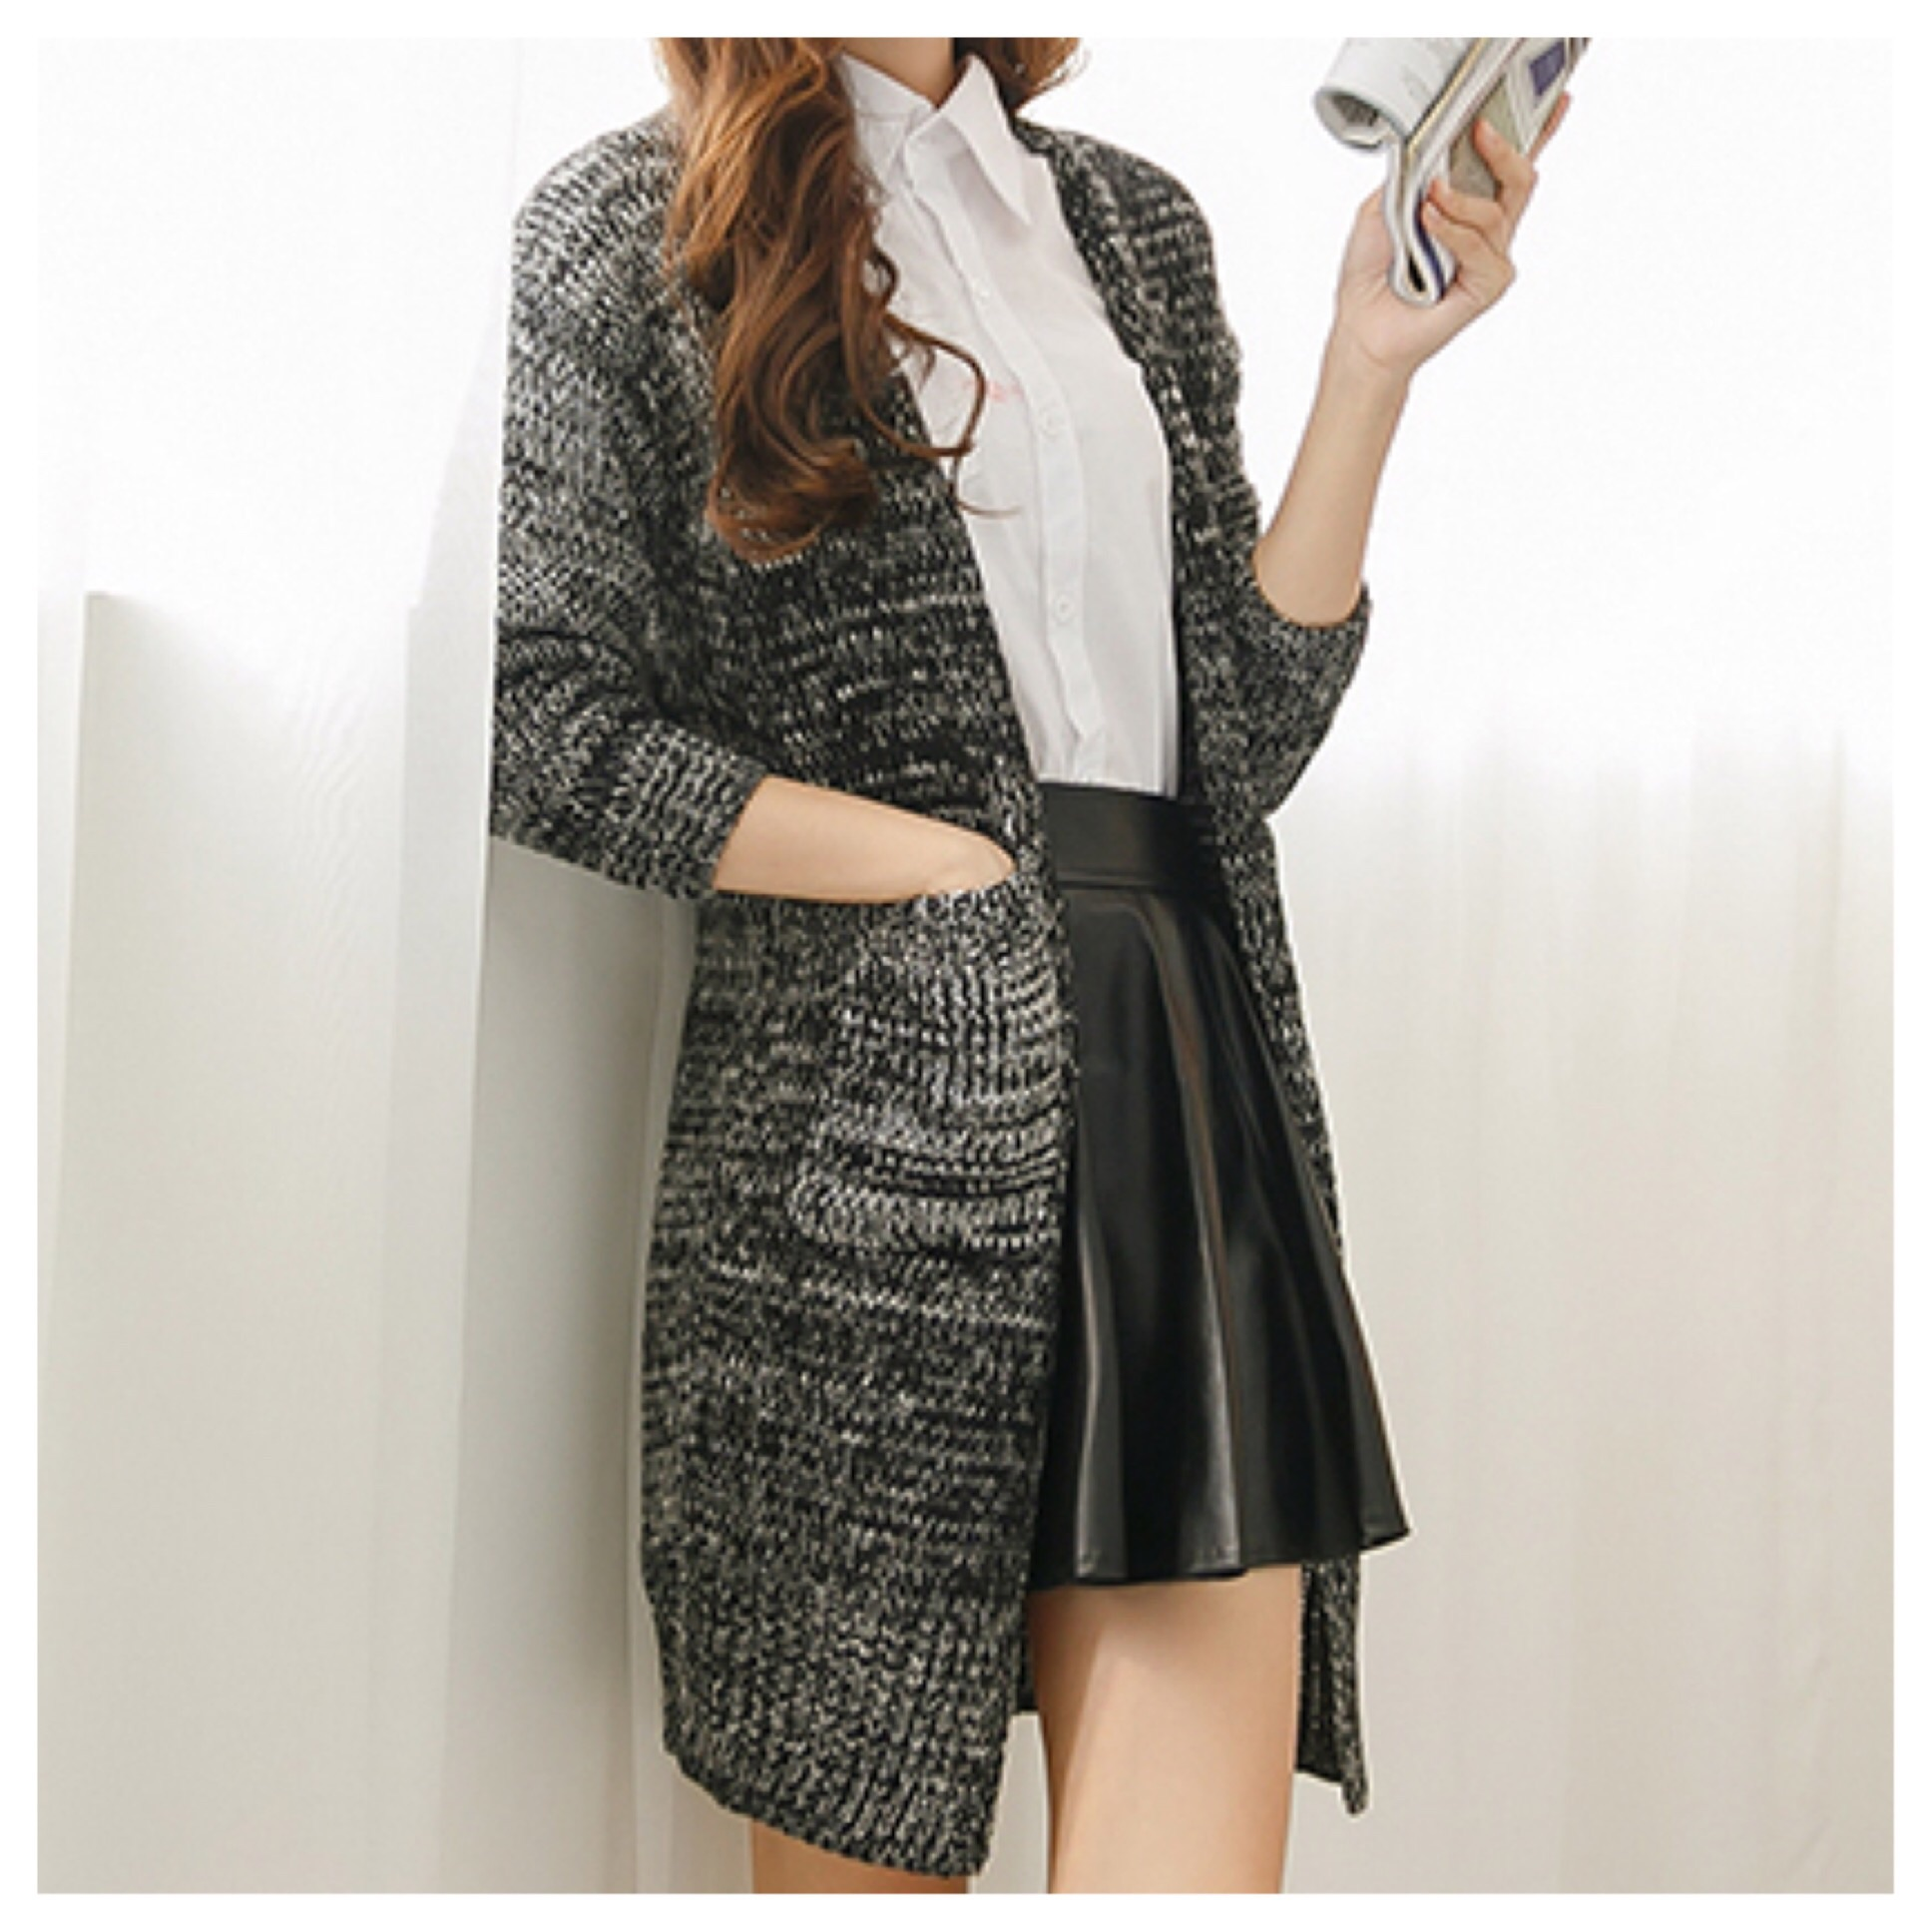 Knitted long cardigan with front pockets